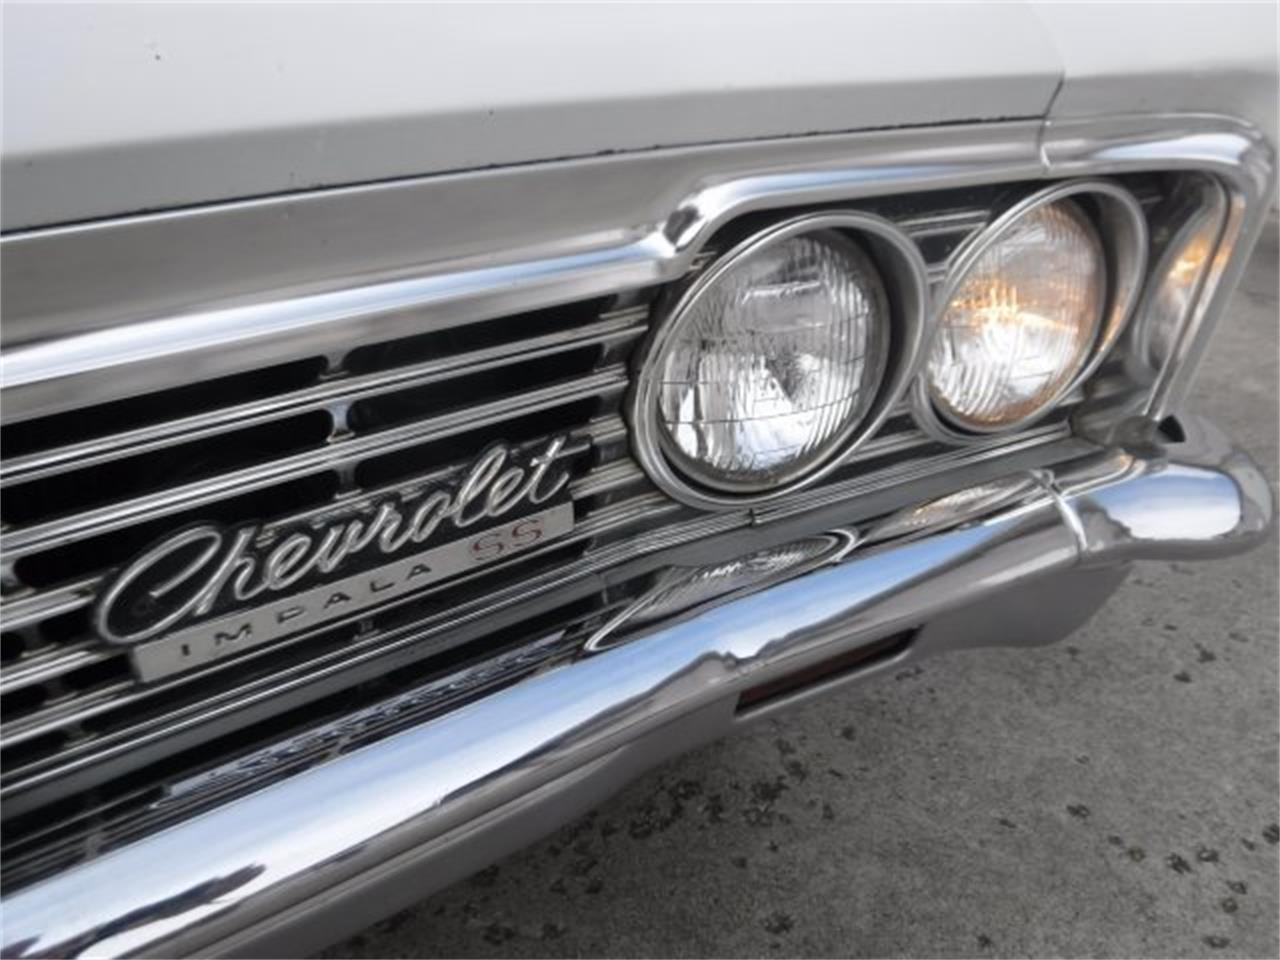 1966 Chevrolet Impala SS for sale in Milford, OH – photo 29